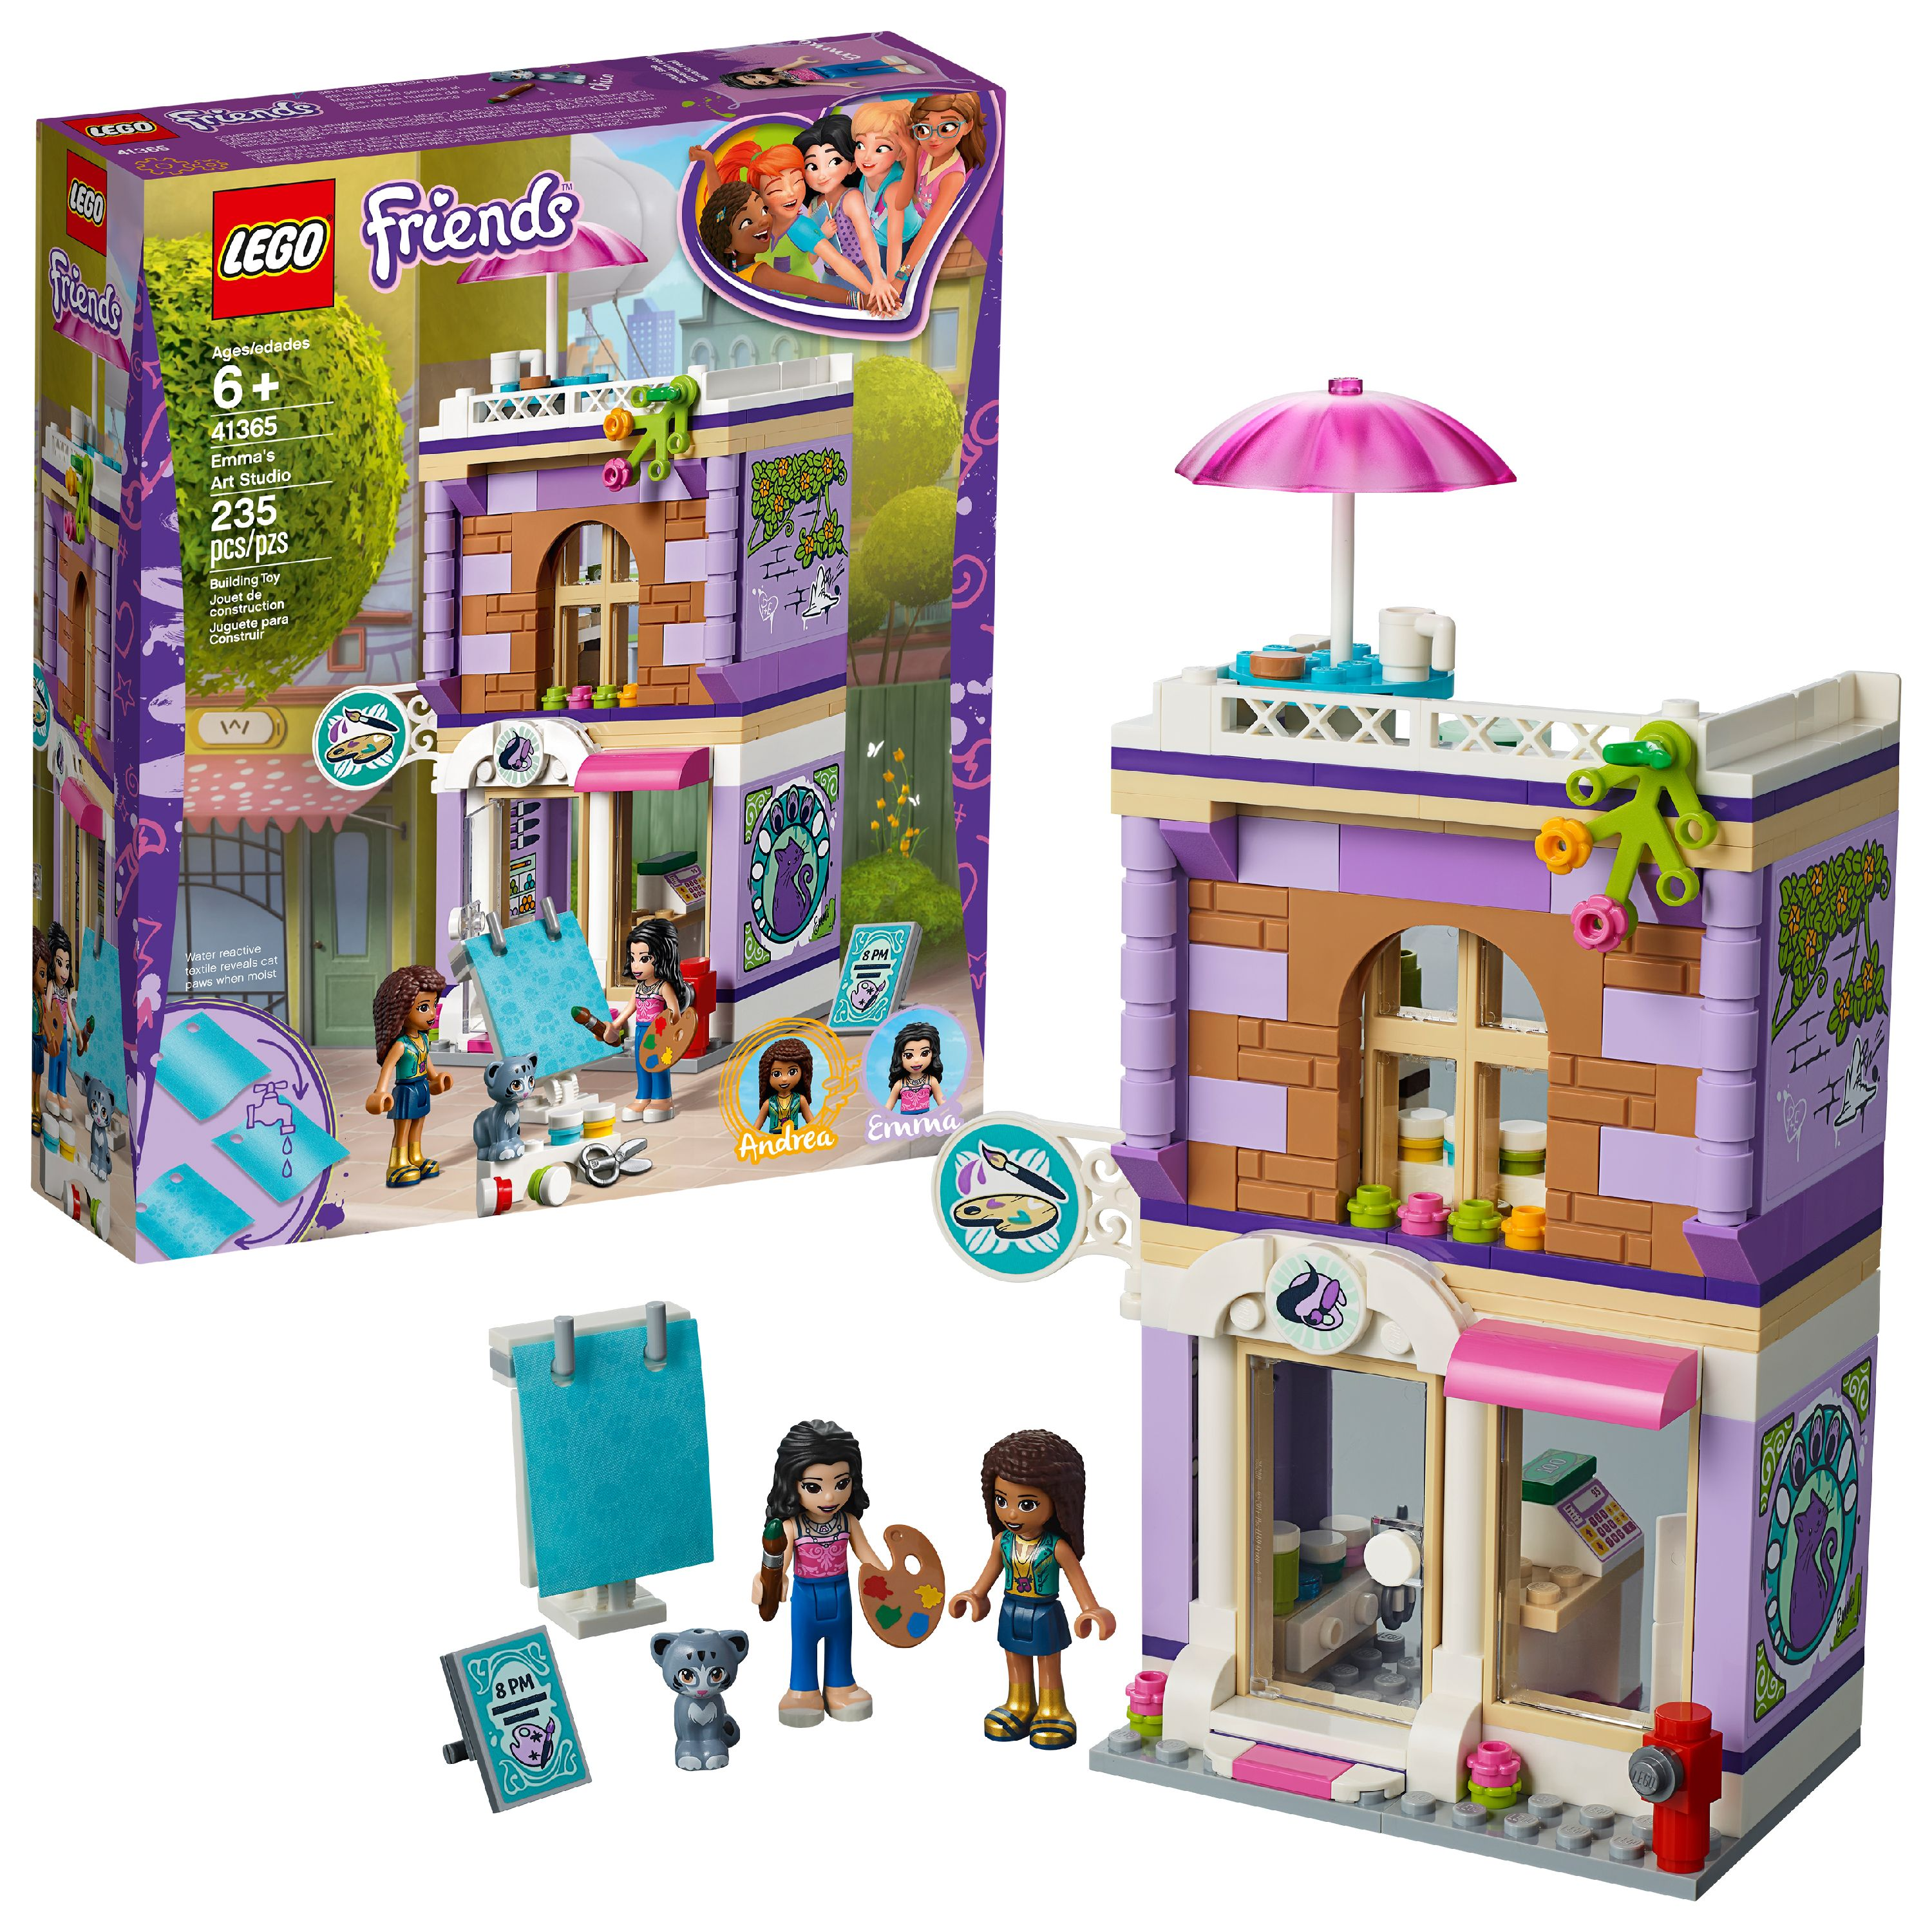 LEGO Friends Emma's Art Studio 41365 Building Set (235 Pieces)